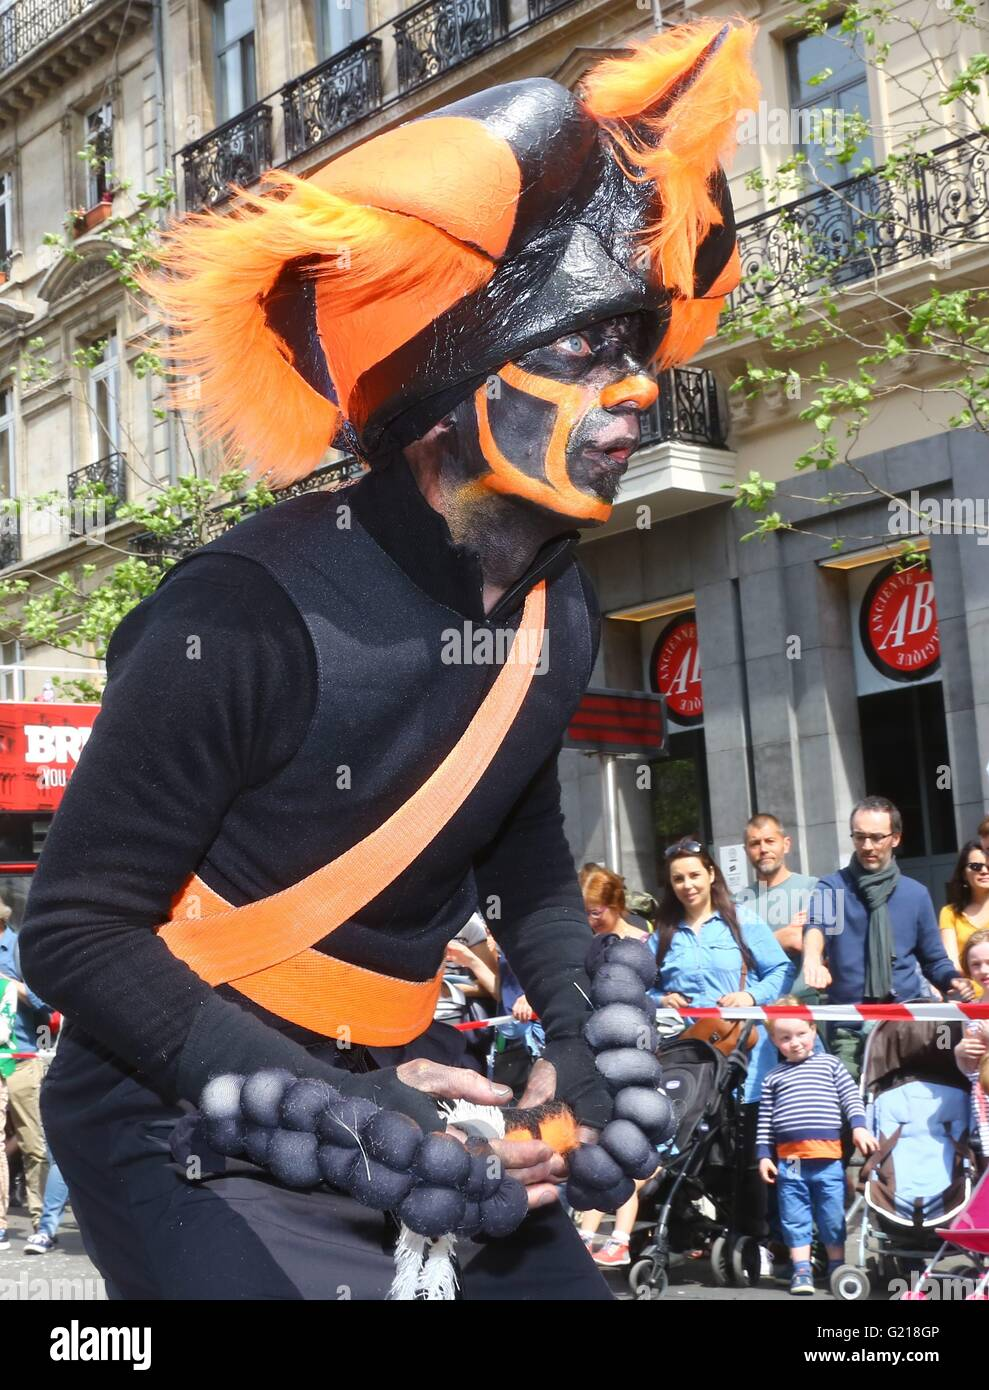 """Brussels. 21st May, 2016. A performer takes part in the biyearly Zinneke Parade under the theme """"Fragil"""" in Brussels, Stock Photo"""